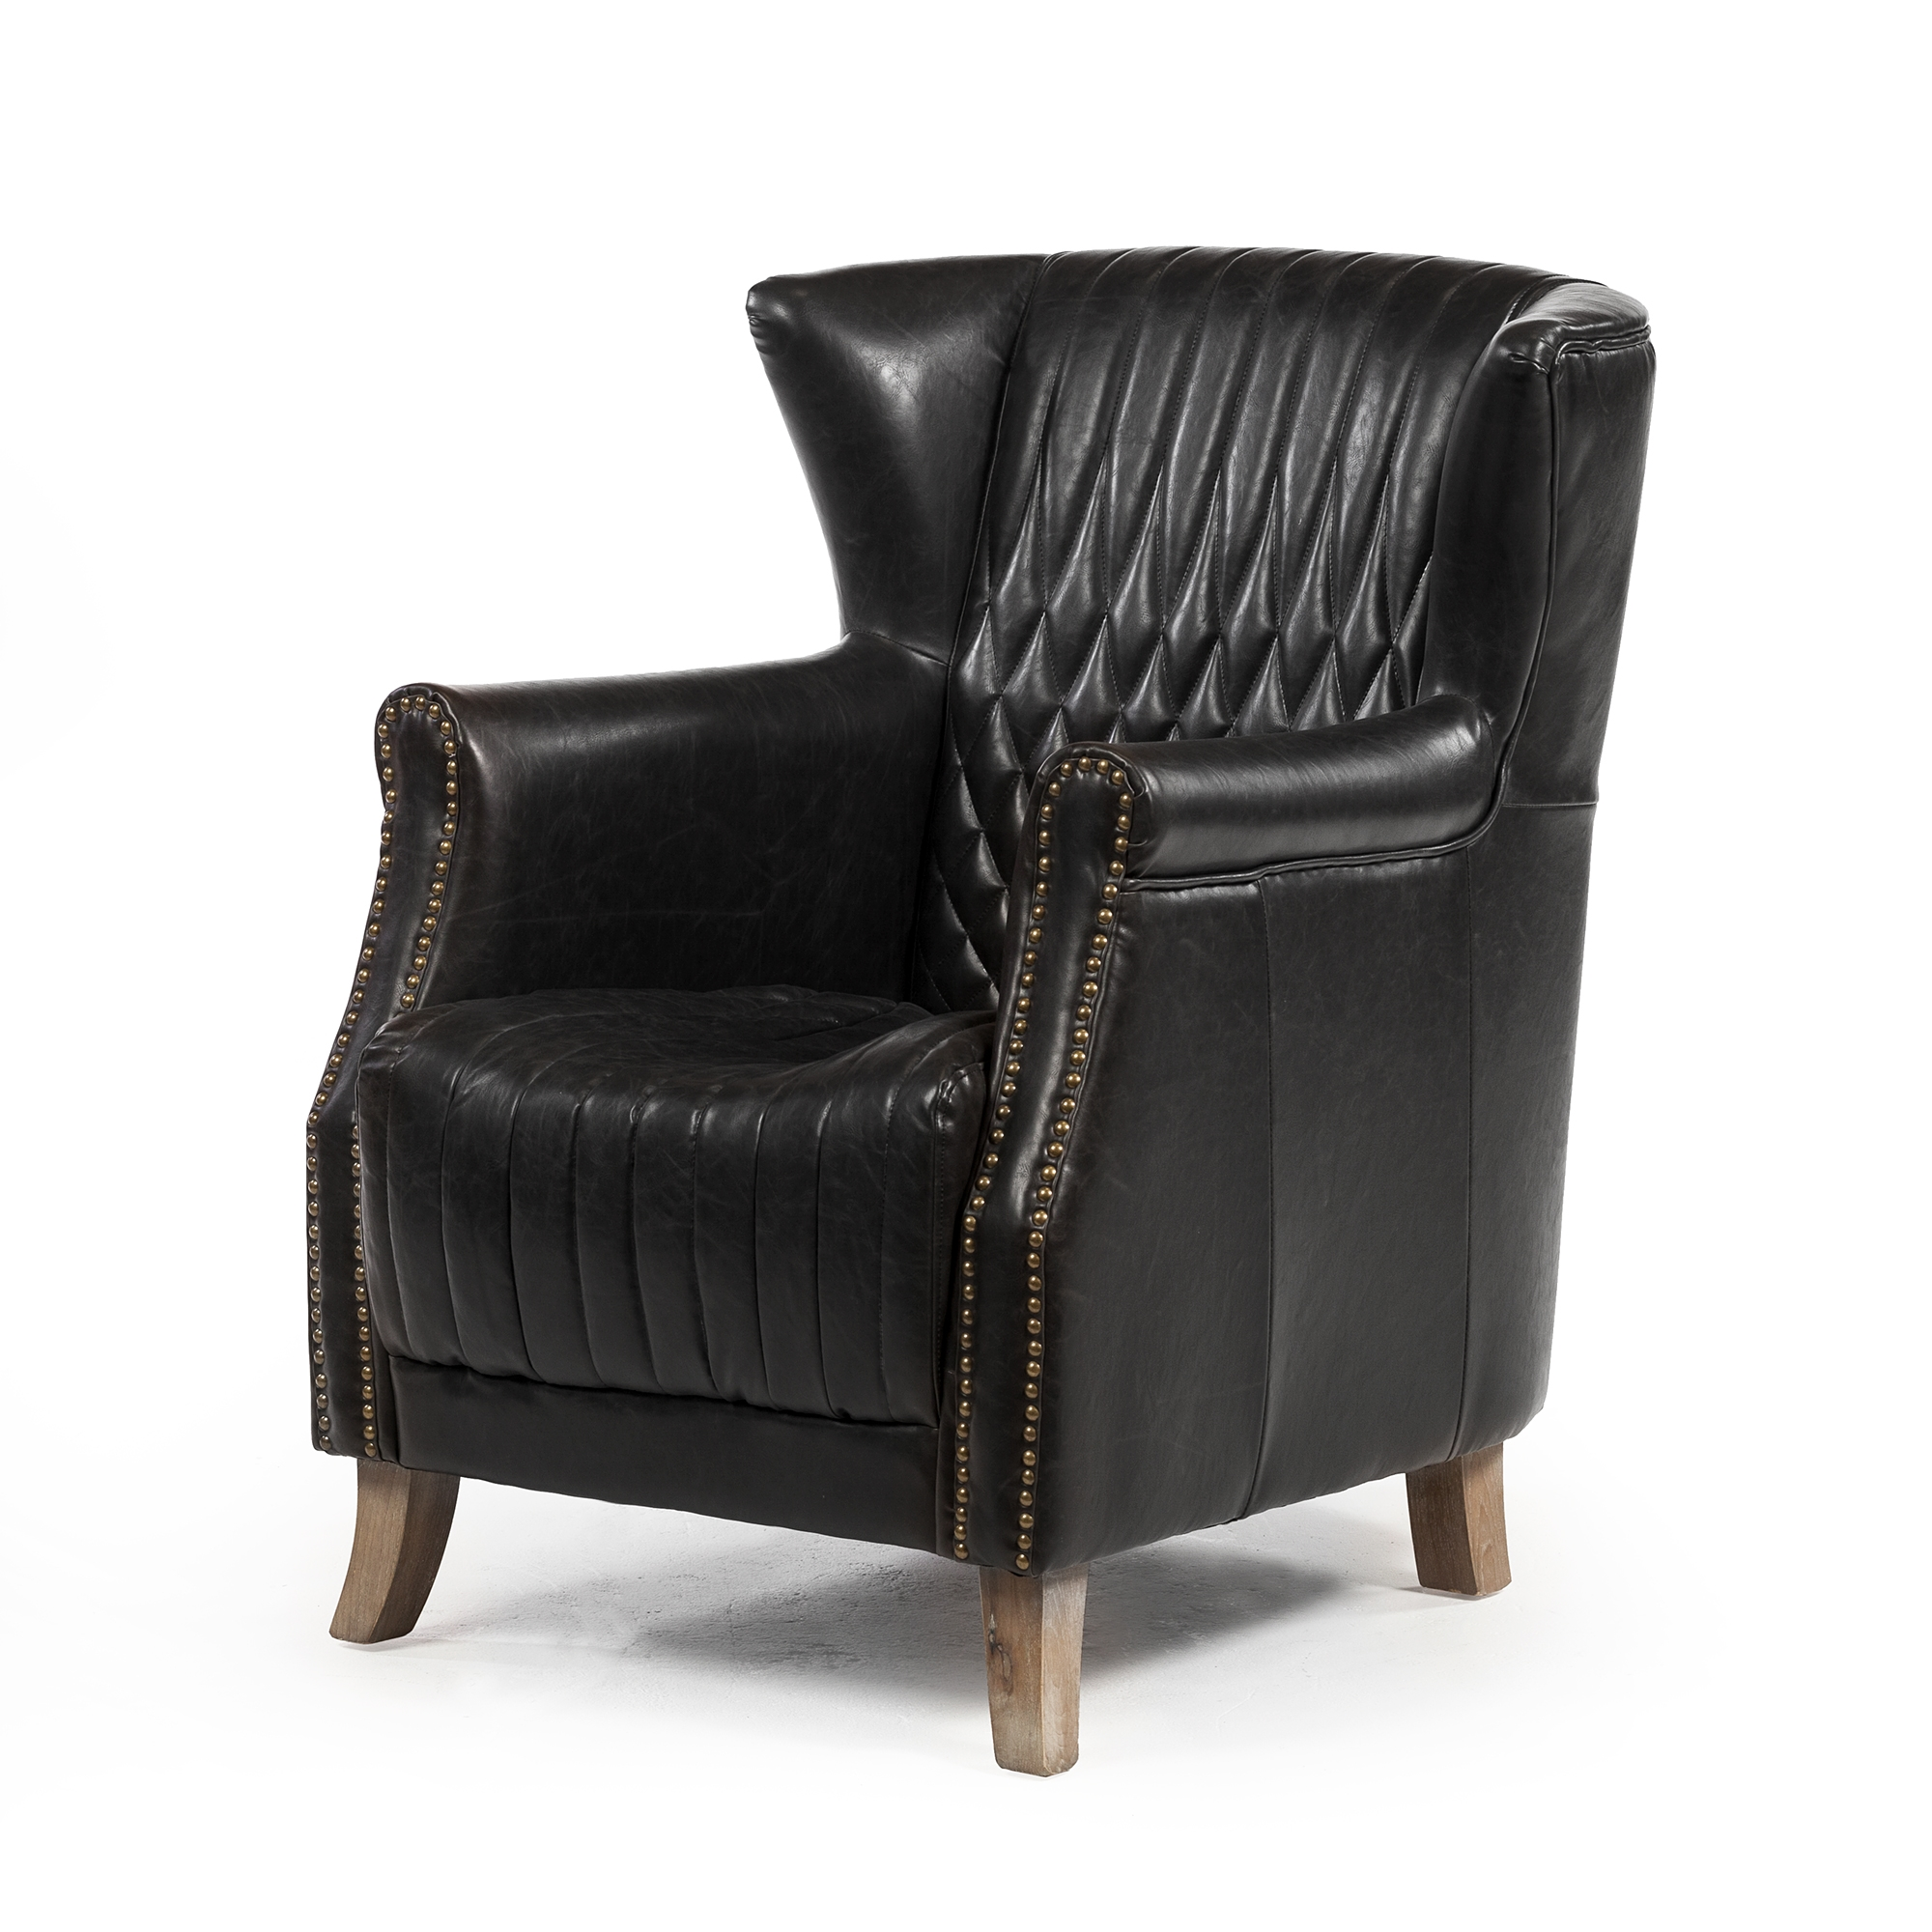 Wing Back Lounge Chair In Distressed Black Leather Larger Photo Email A  Friend